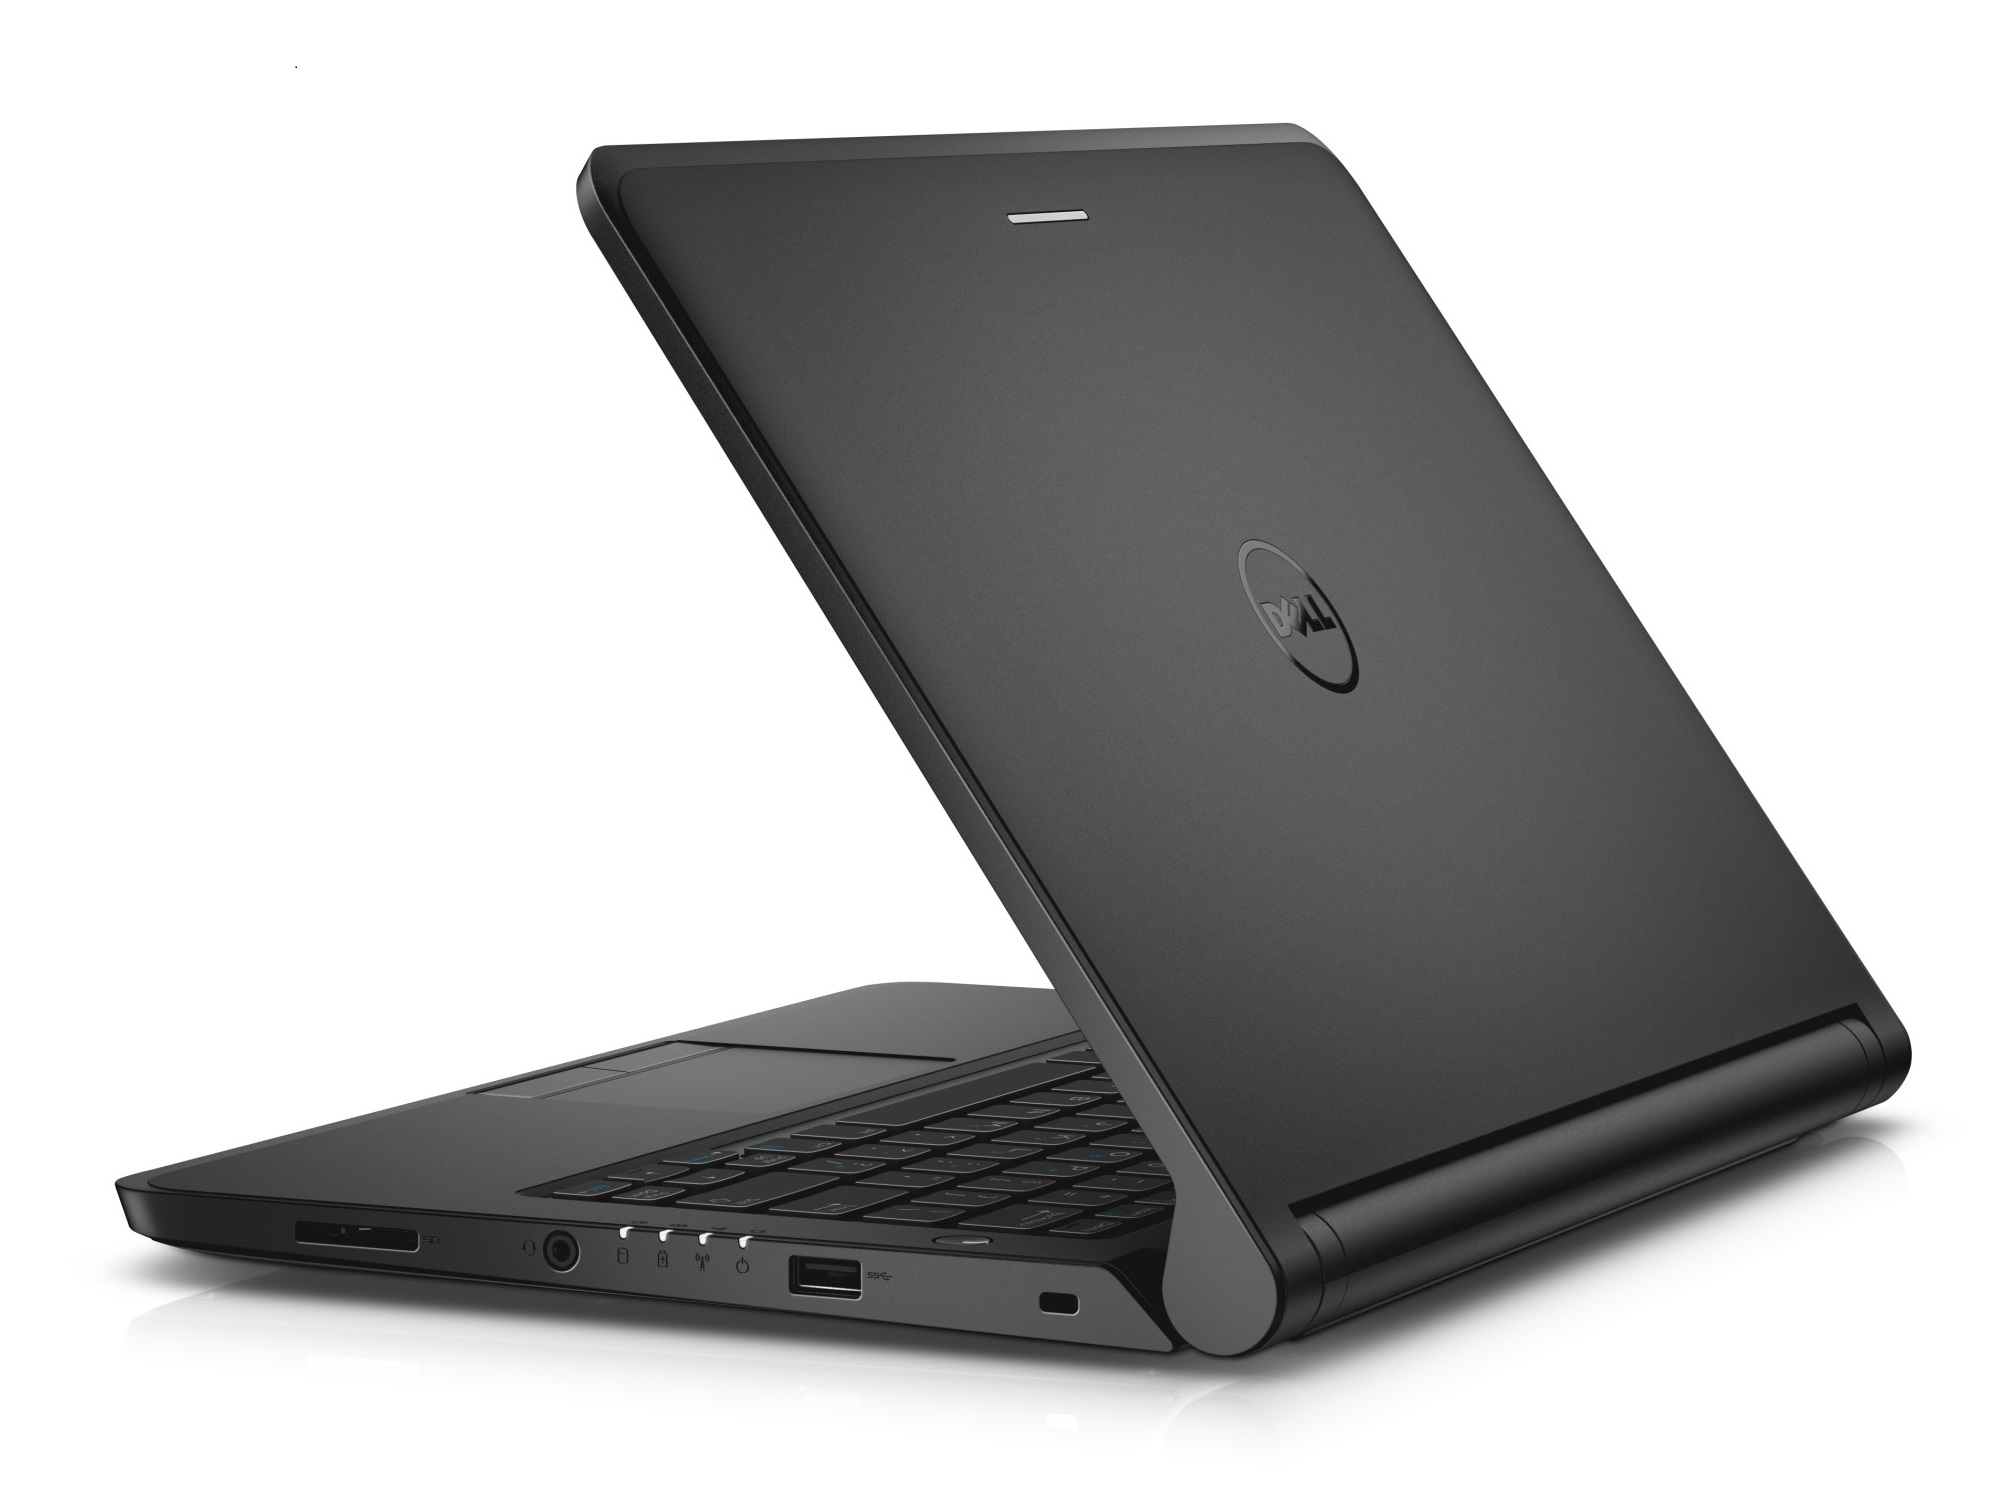 "DELL Latitude 3350/i3-5015U/4GB/500GB/Intel HD 5500/13.3"" HD/Win 10Pro 64bit/No backlit kb/Black"